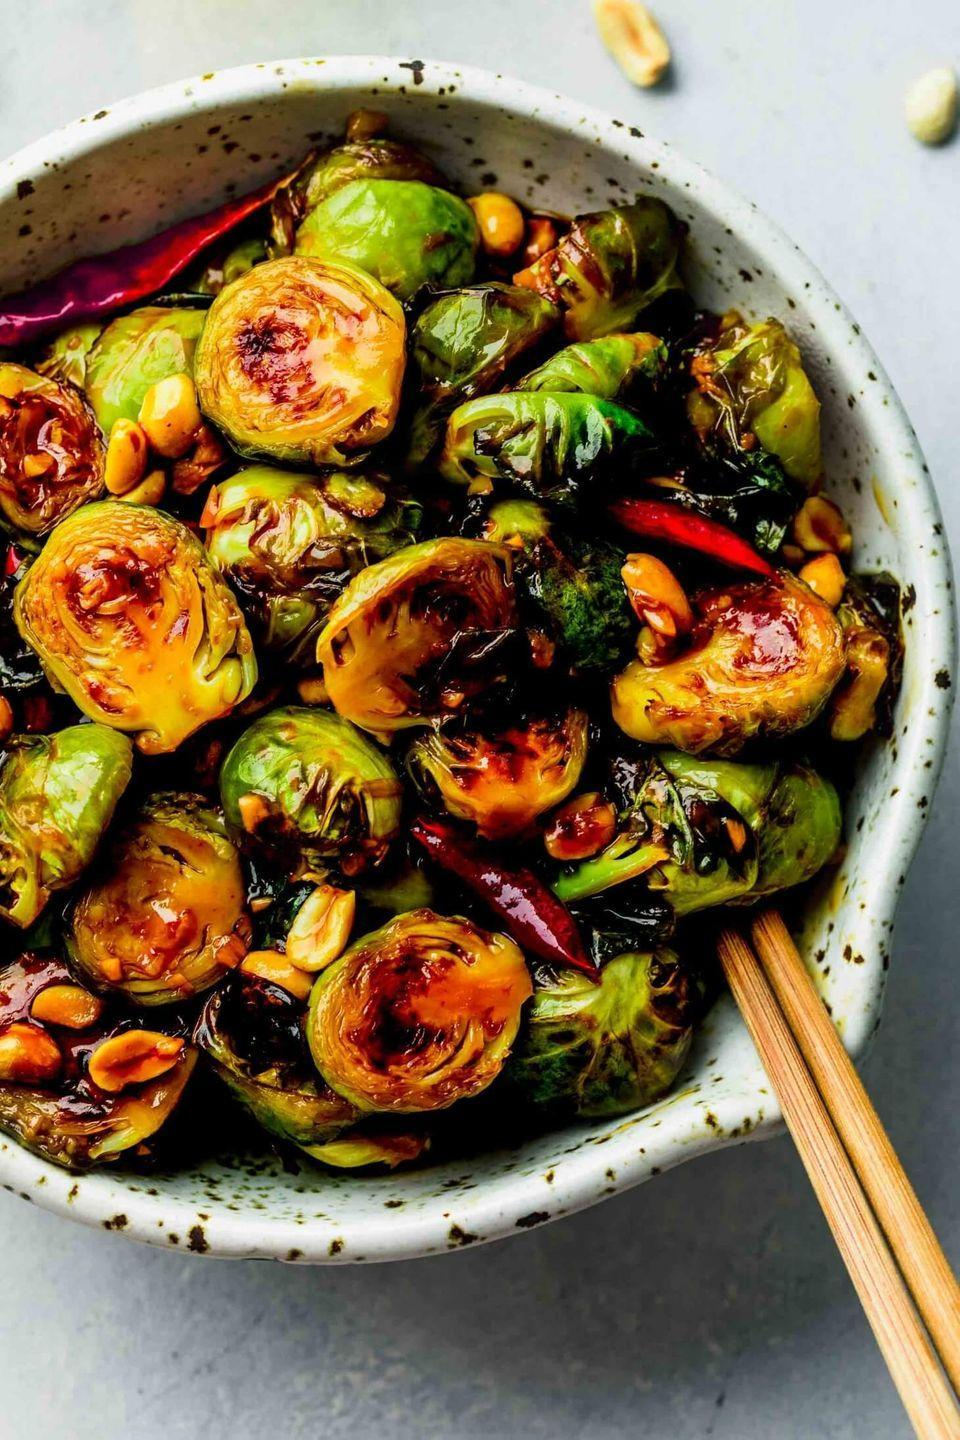 """<p>Inspired by Kung Pao chicken, these sprouts are coated in an addictive spicy-sweet sauce. Toss with roasted peanuts for an extra-crispy side. </p><p><strong>Get the recipe from <a href=""""https://www.platingsandpairings.com/kung-pao-brussels-sprouts/"""" rel=""""nofollow noopener"""" target=""""_blank"""" data-ylk=""""slk:Platings + Pairings"""" class=""""link rapid-noclick-resp"""">Platings + Pairings</a>.</strong></p>"""